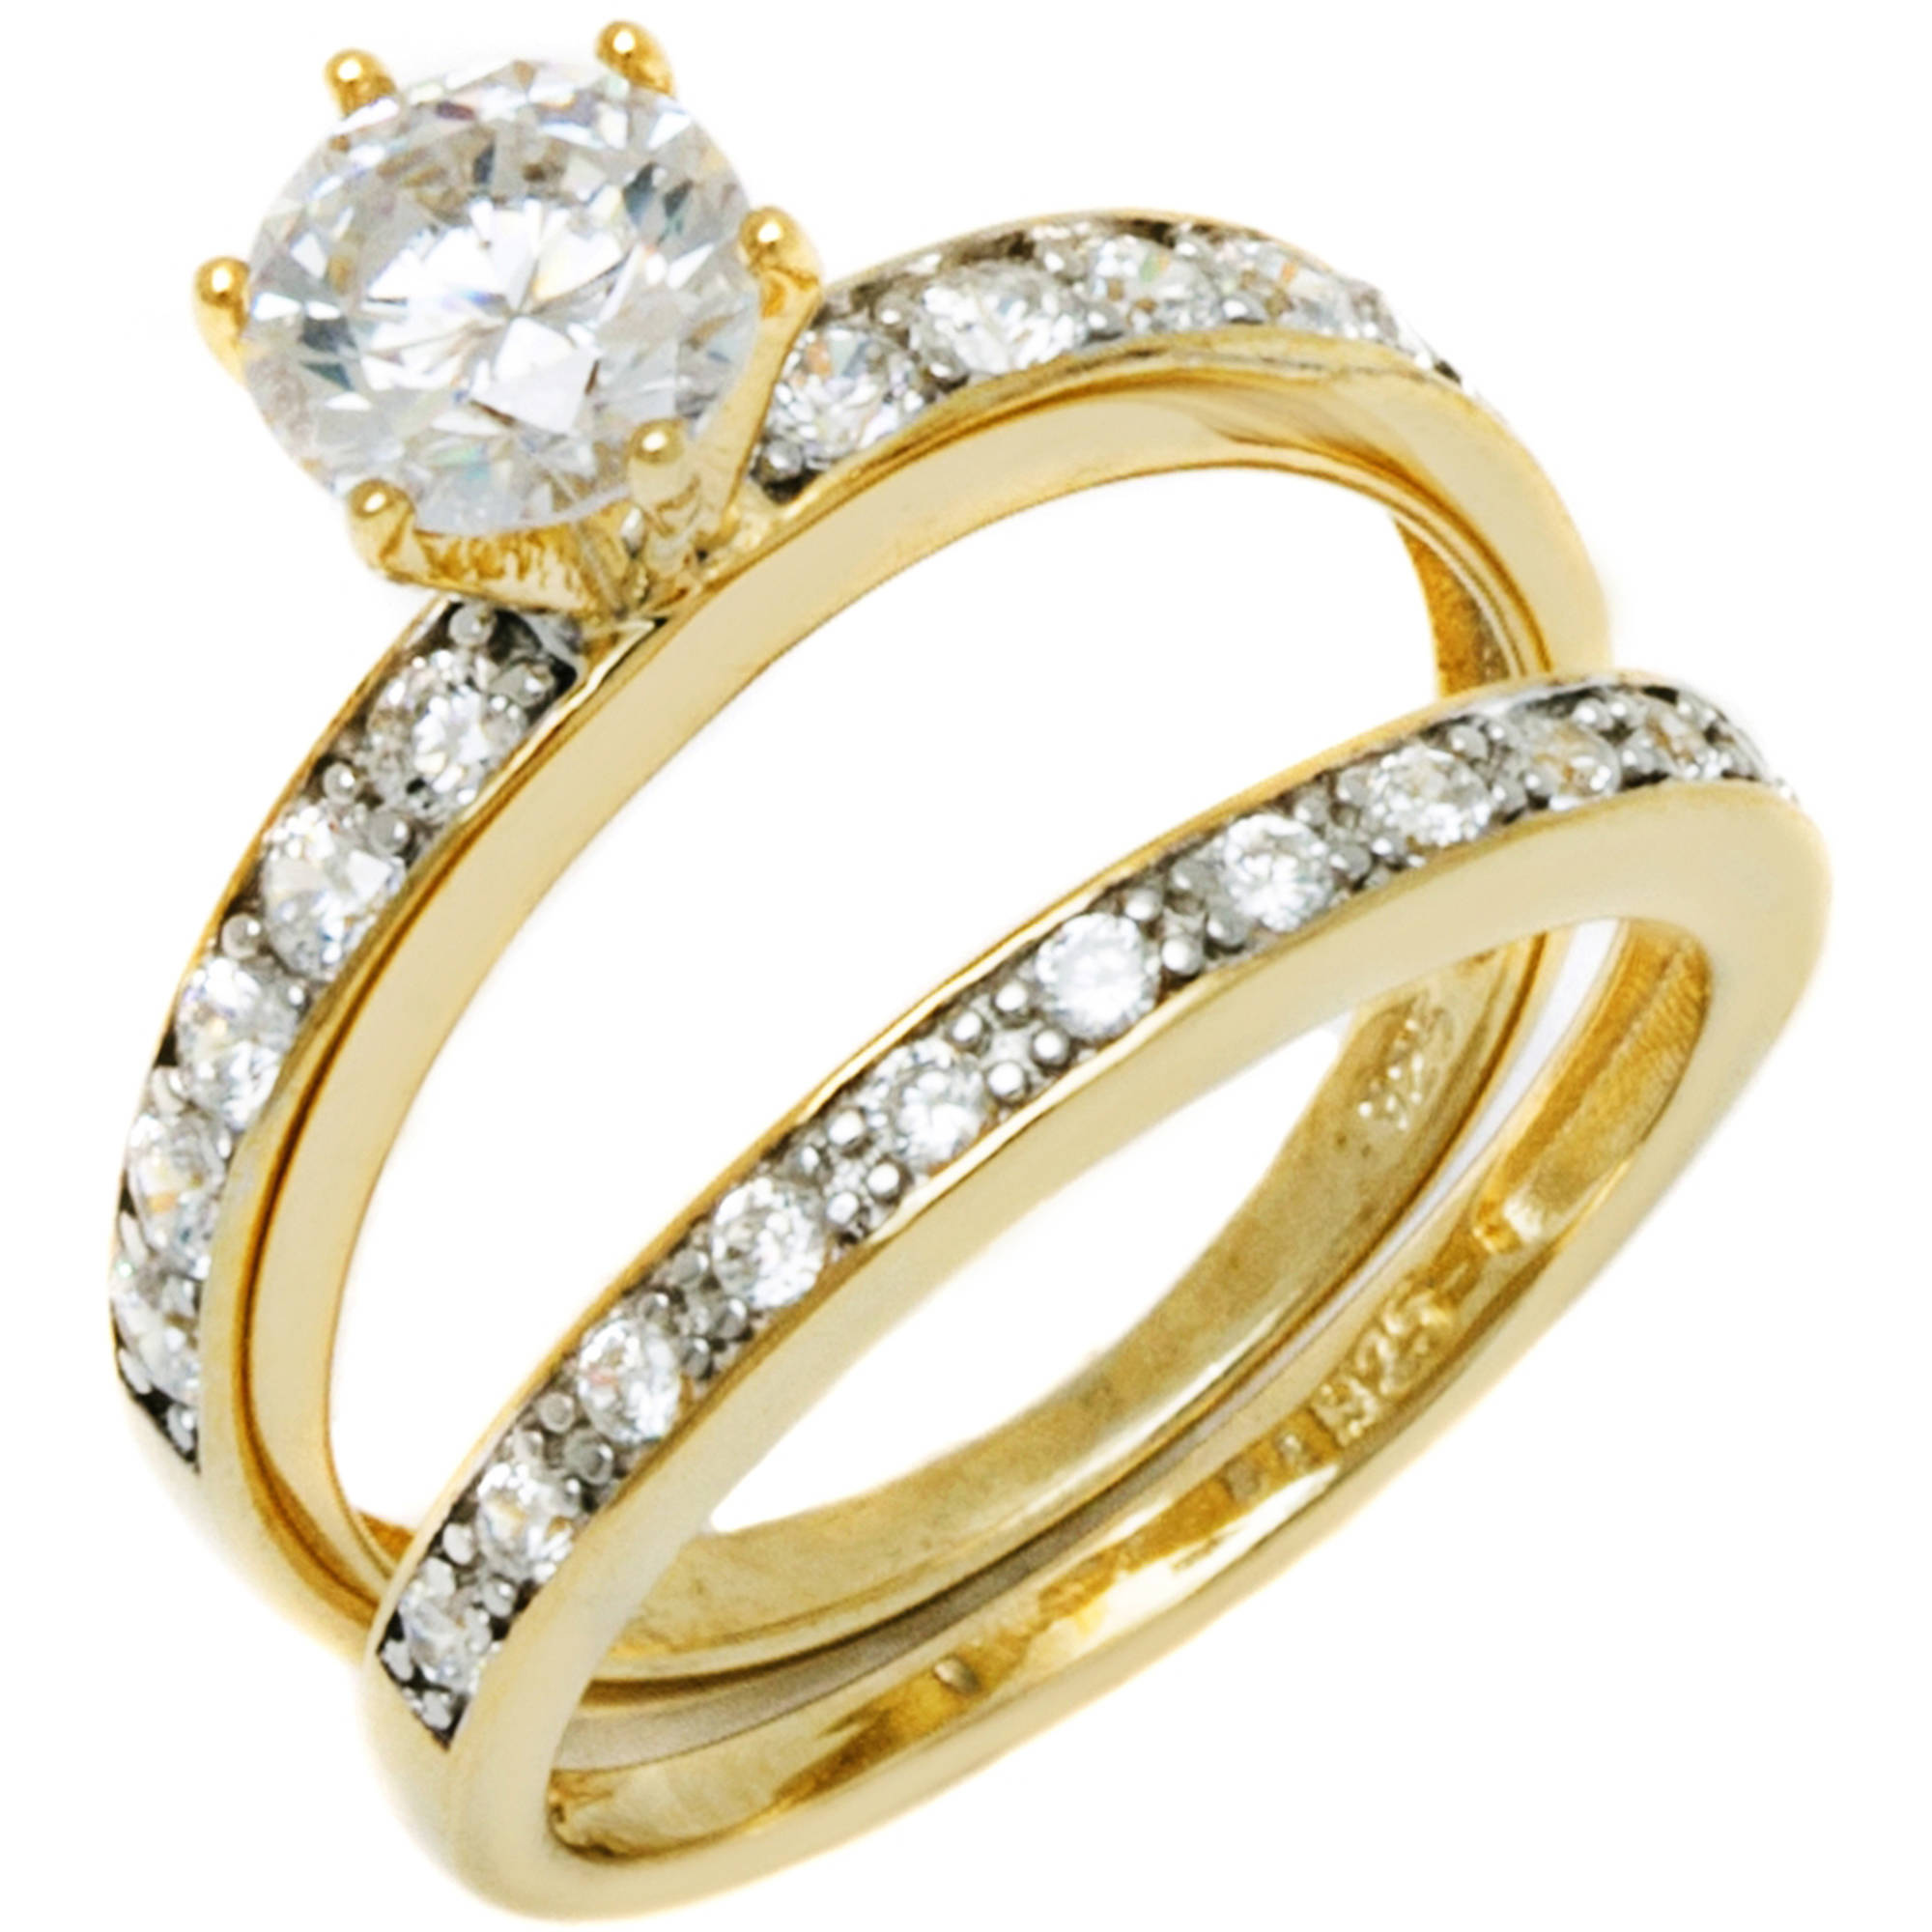 PORI Jewelers Round CZ 18kt Gold over Sterling Silver Solitaire 6-Prong Engagement Ring and Band Set, Available in 4 Sizes